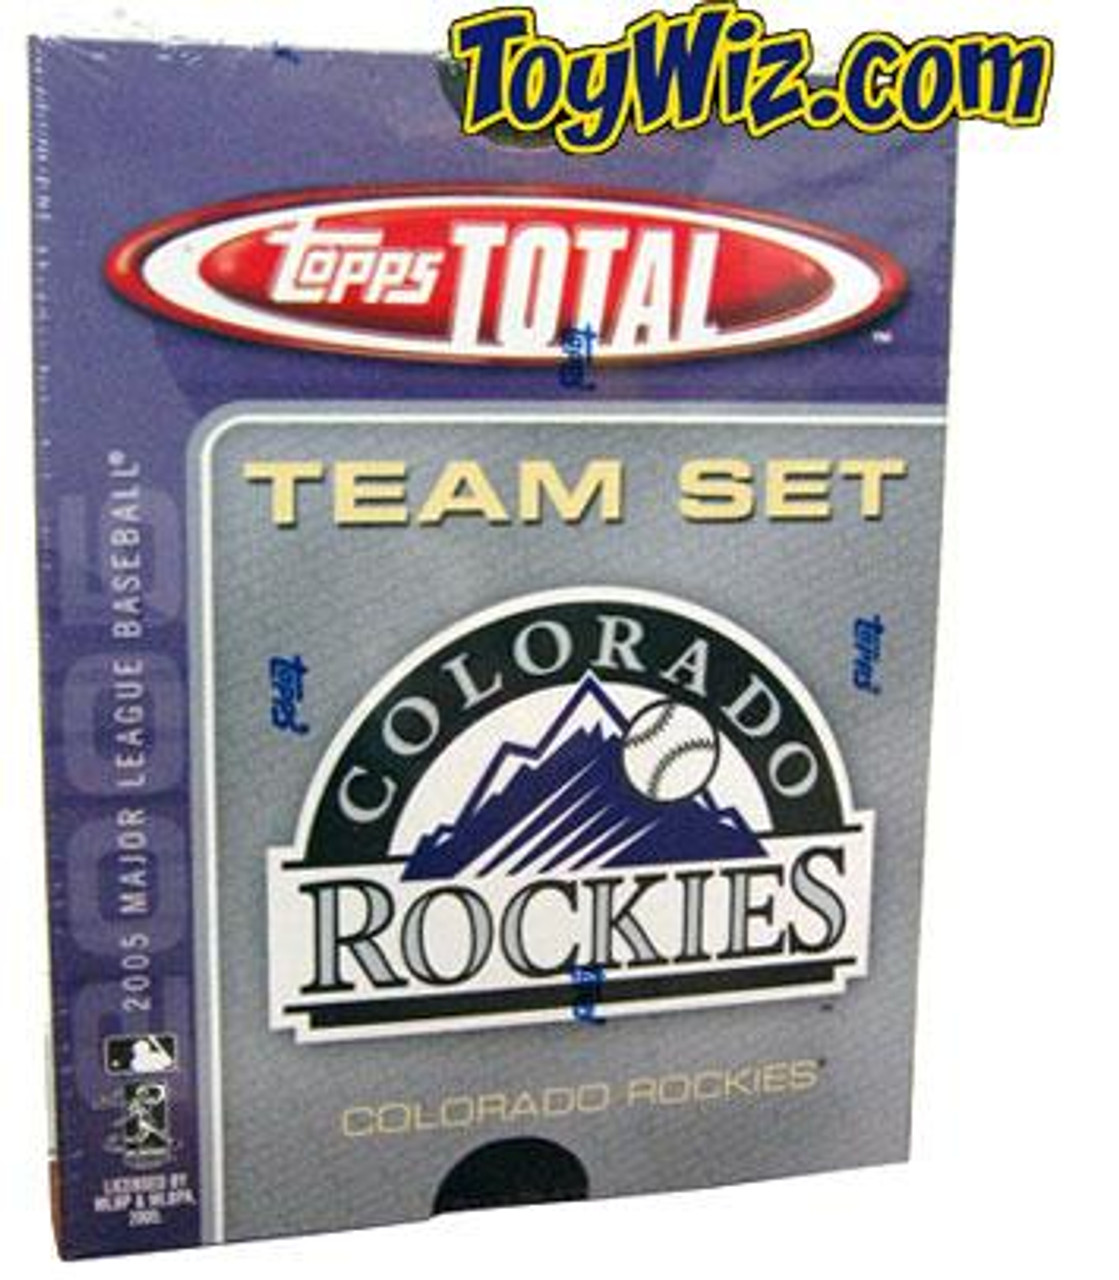 MLB 2005 Topps Total Baseball Cards Colorado Rockies Team Set